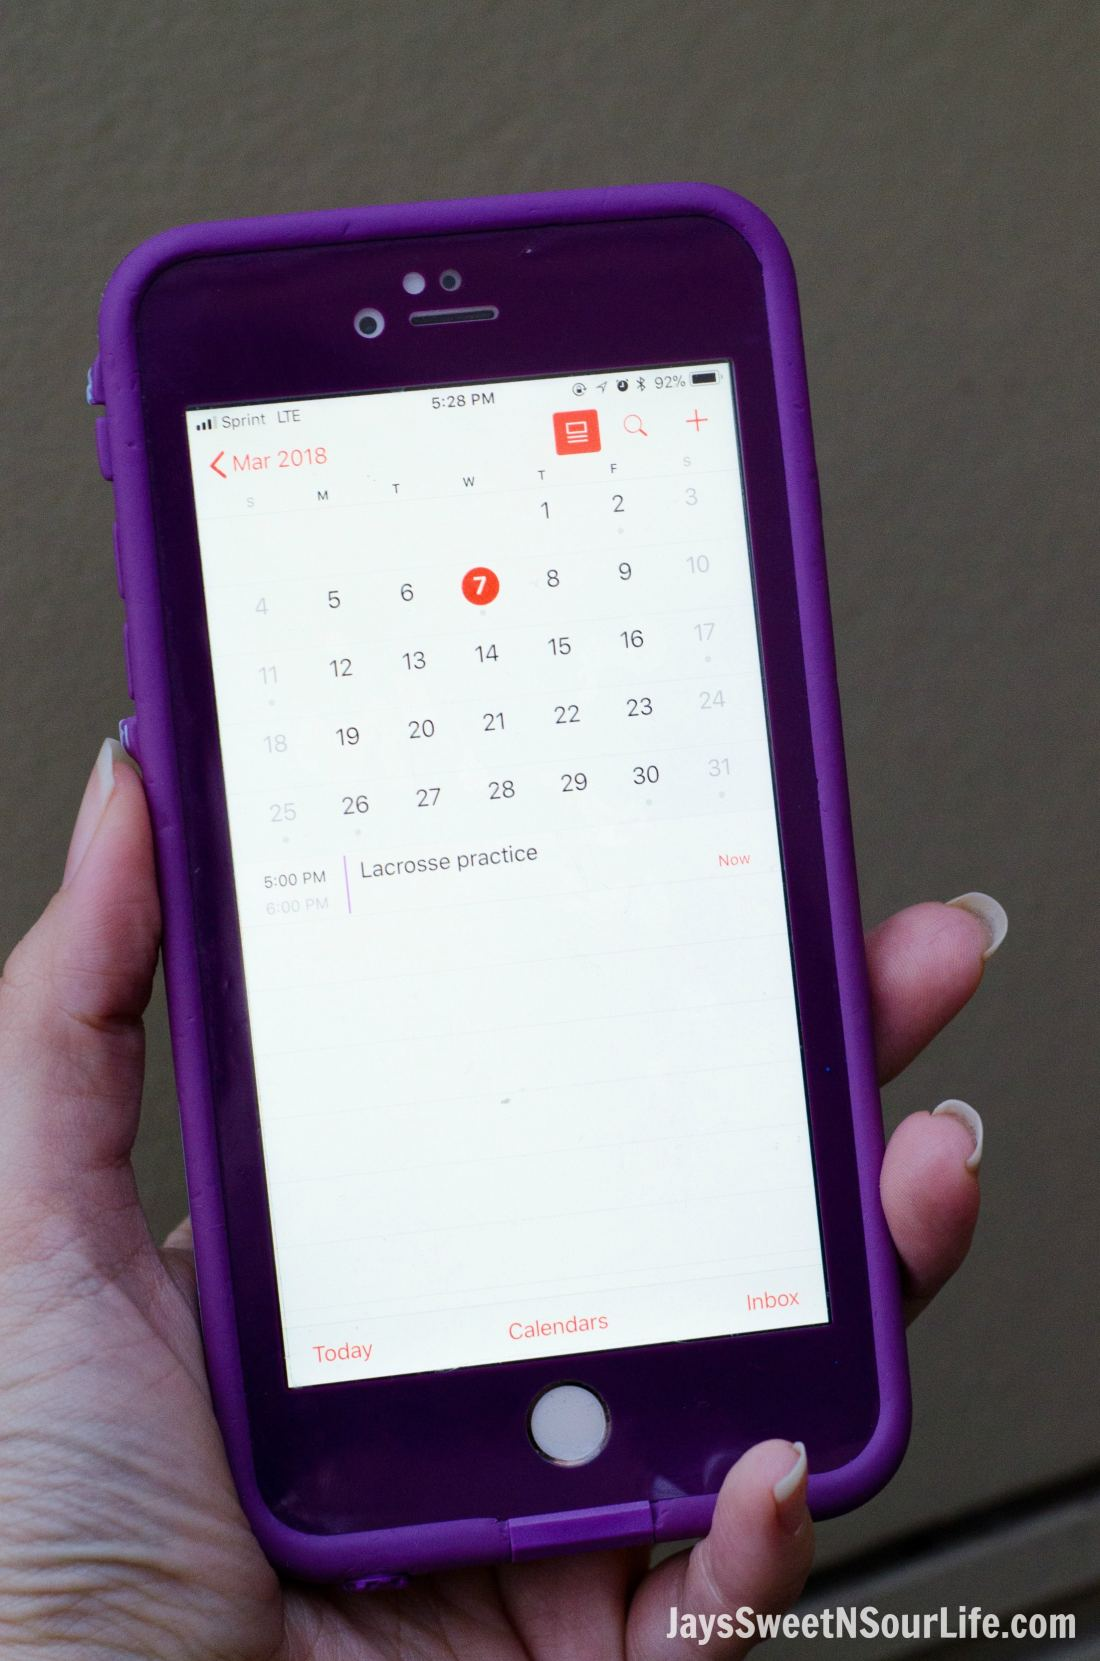 5 tips for the on the go mom. Use calendars you can find in your phone or online to help organize daily activtiy schedules.